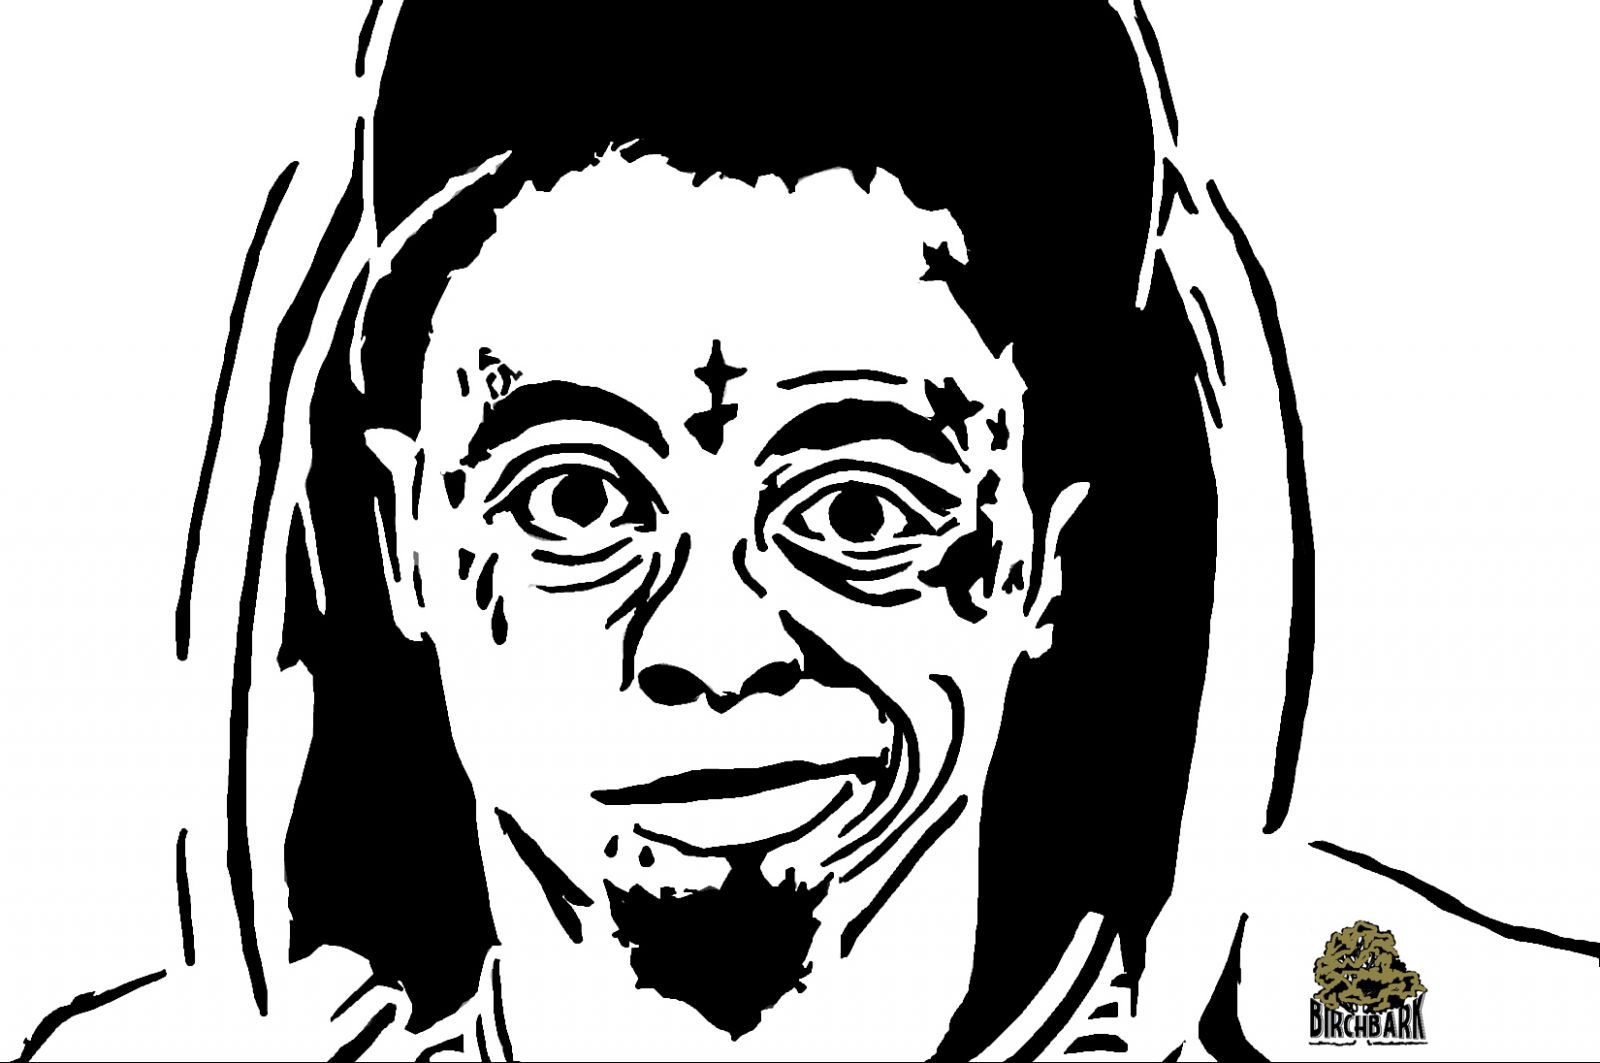 lil wayne coloring pages to print   Lil Wayne - Free Coloring Pages